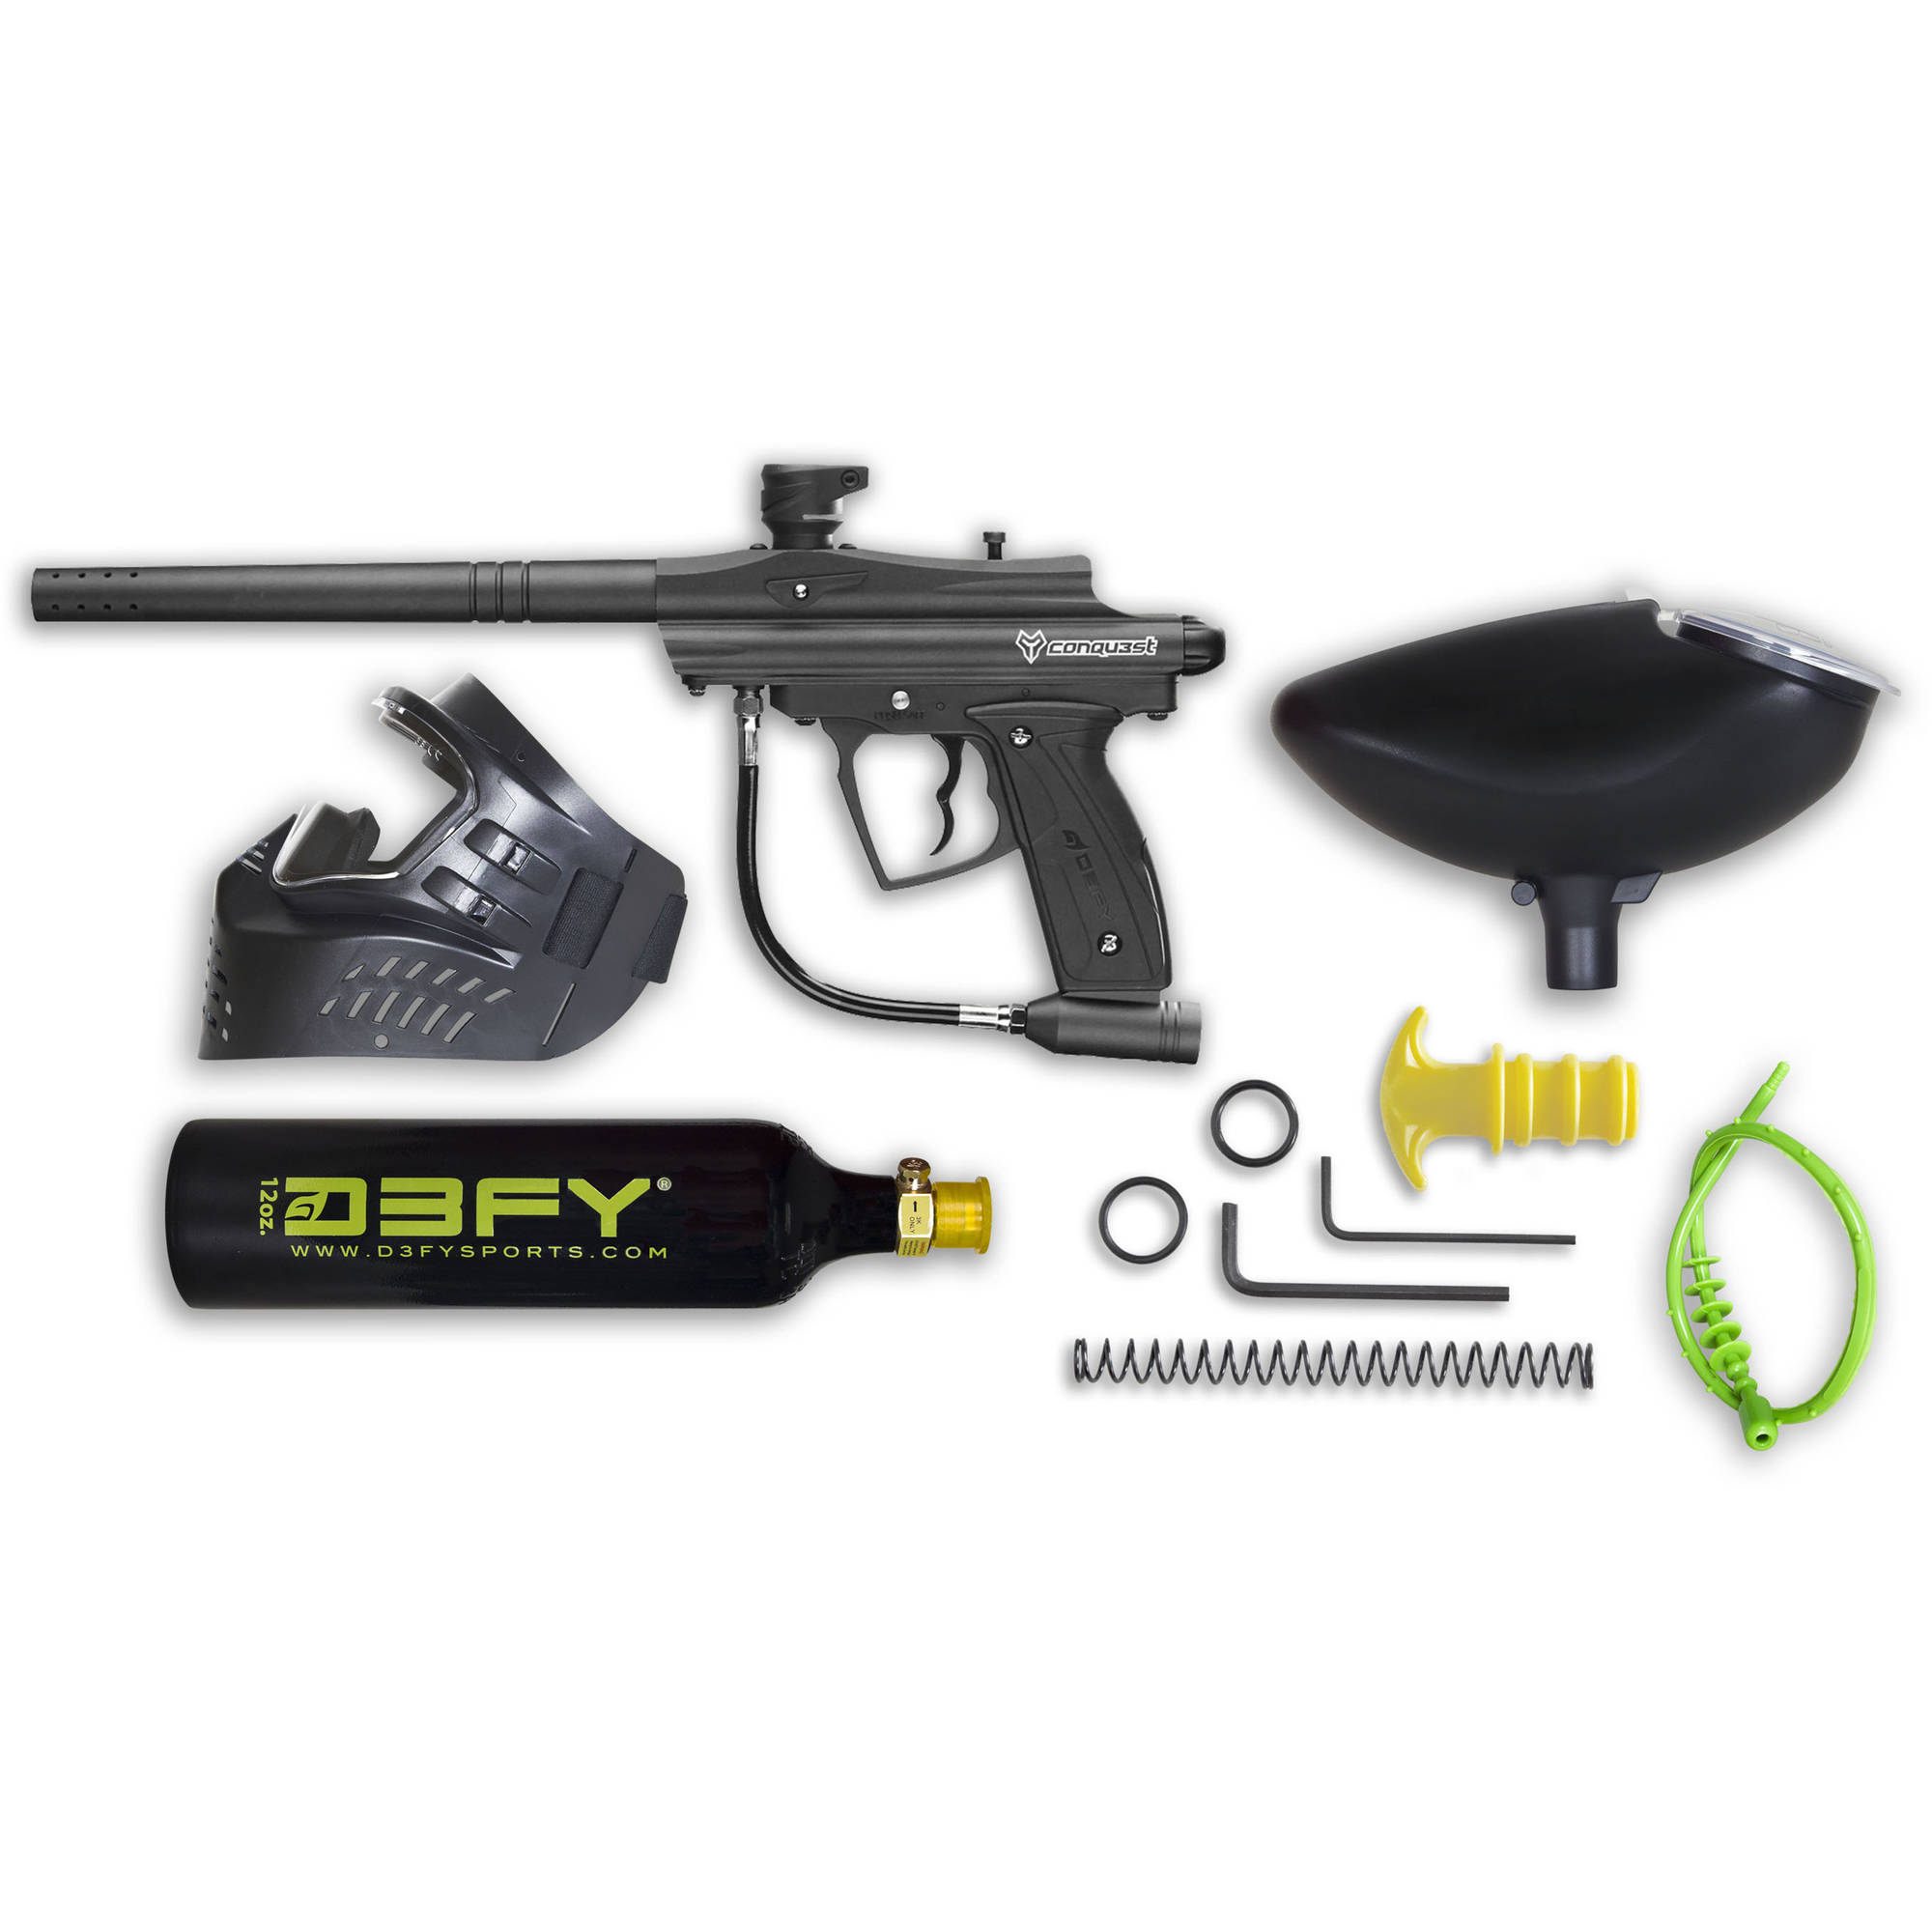 Conqu3st Semi-Auto Paintball Combo Pack